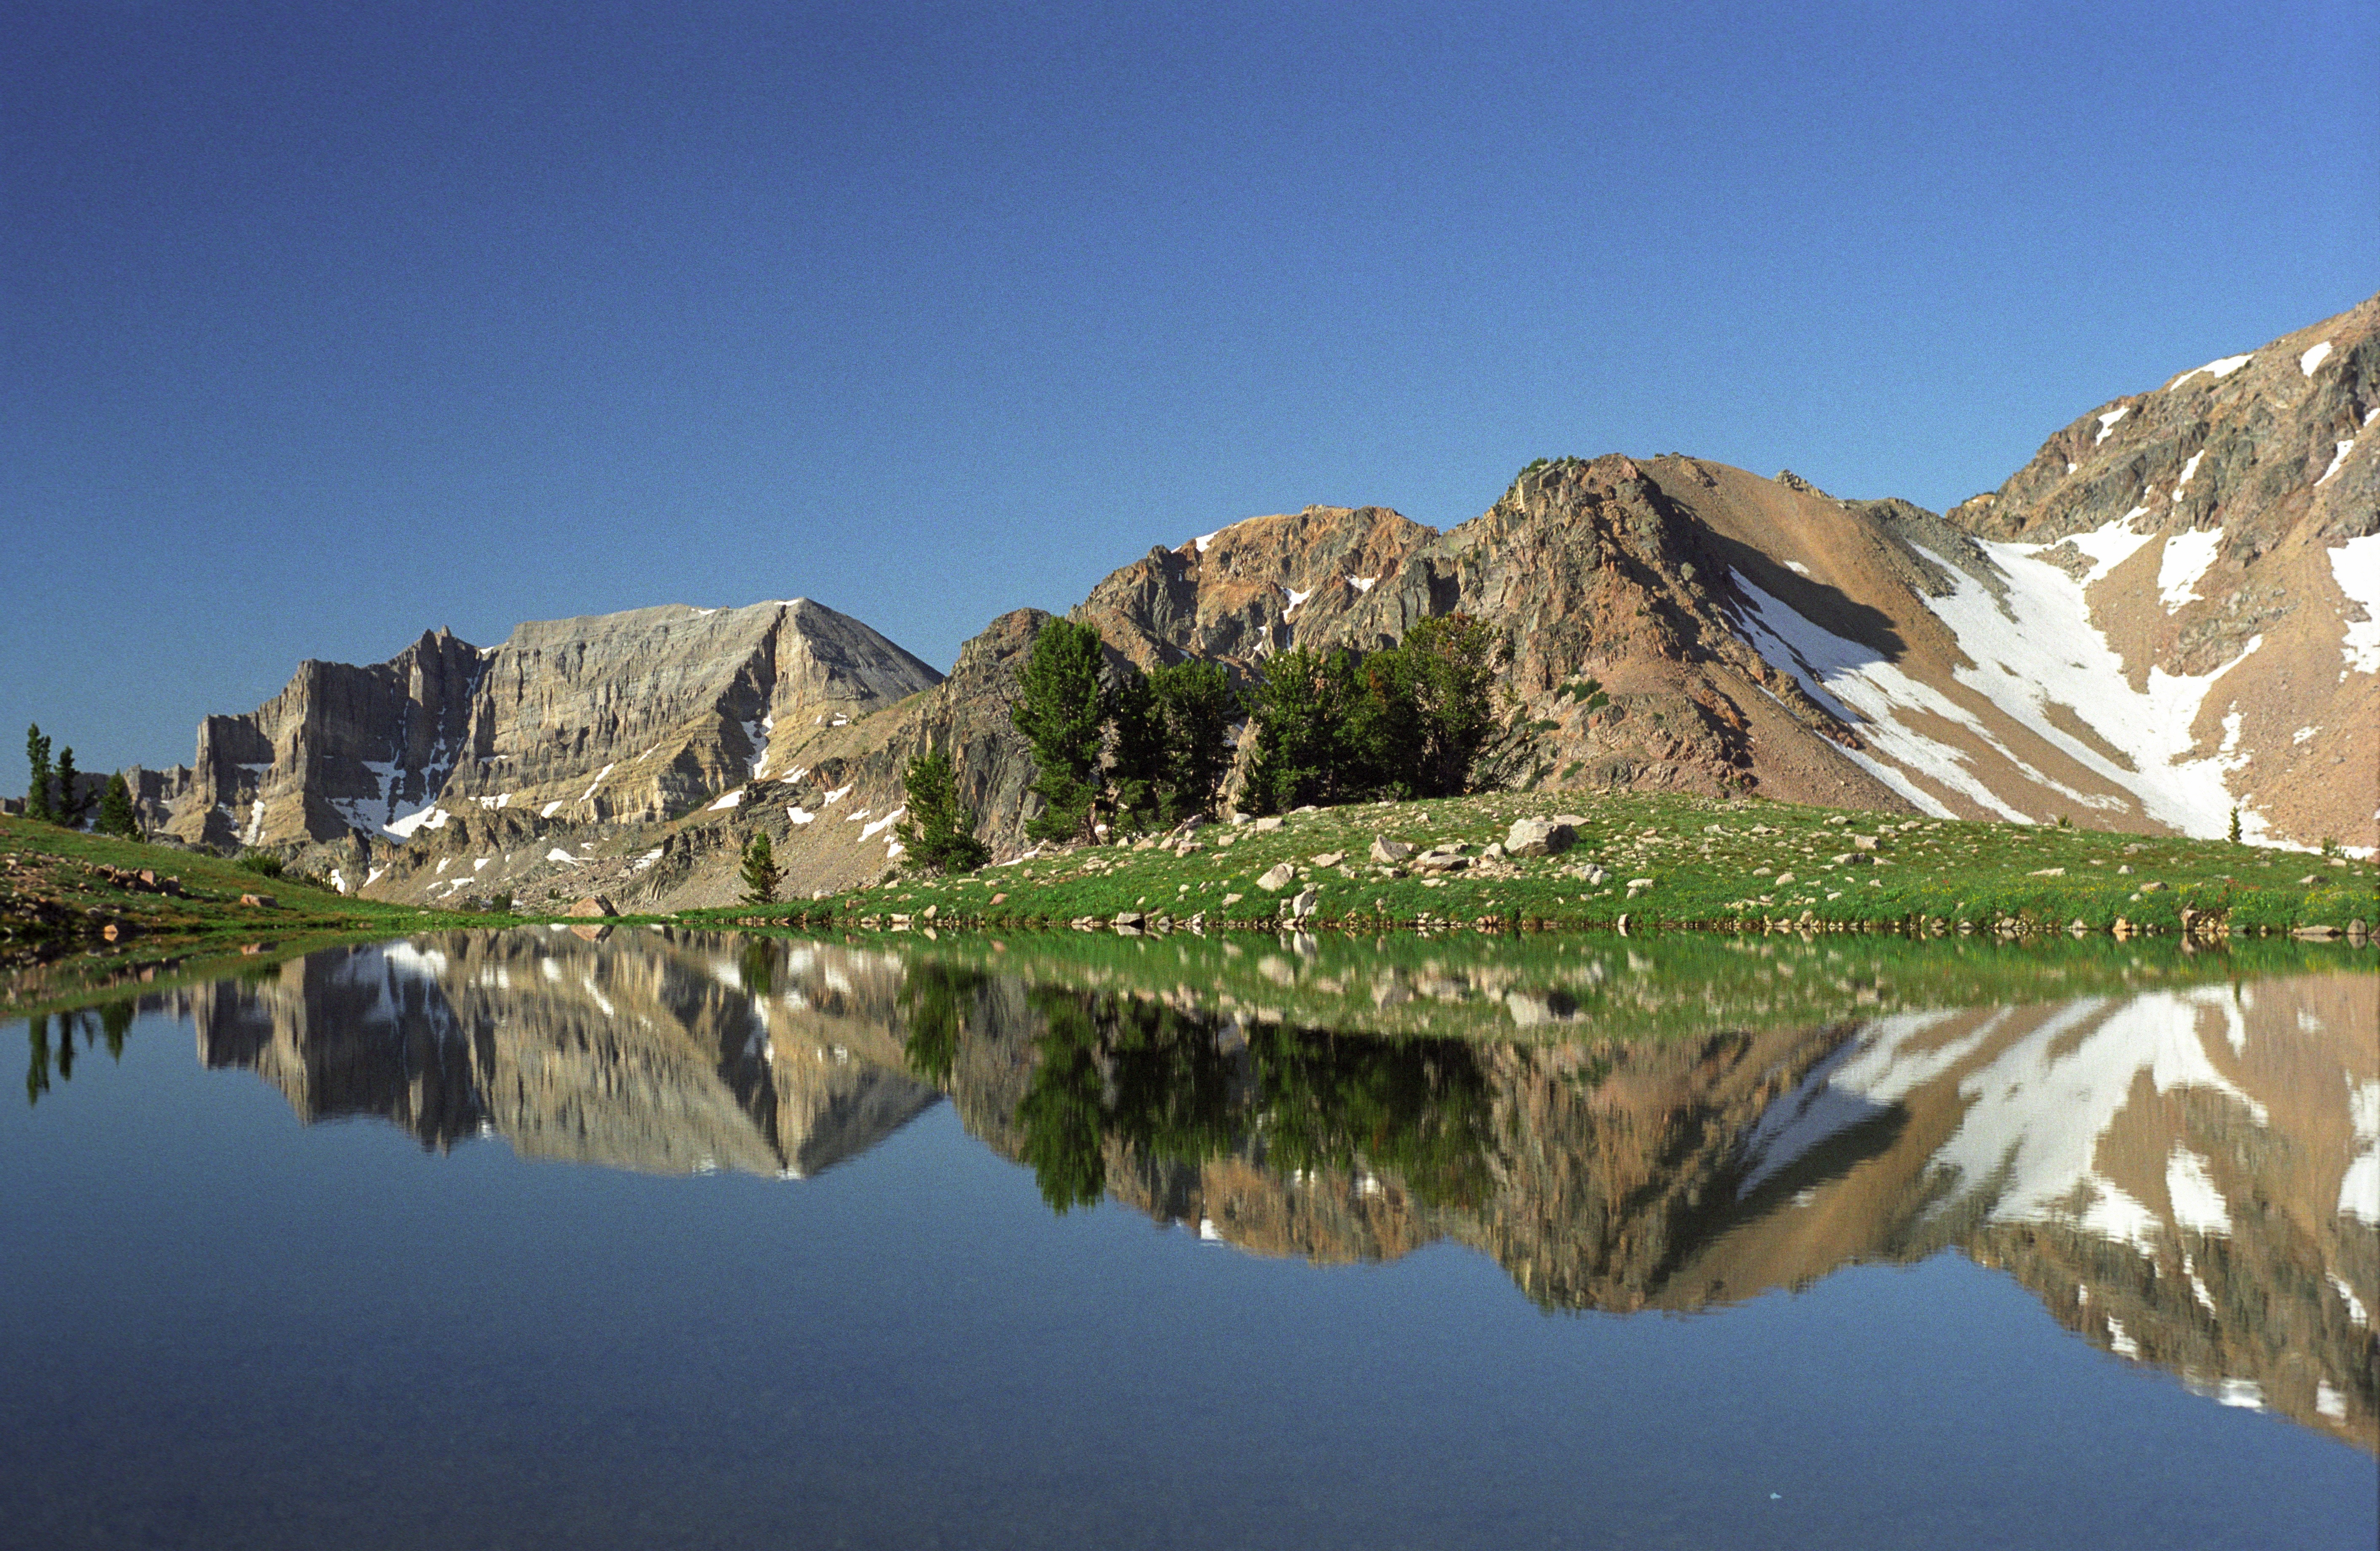 Wilderness lake picture on the Bridger-Teton National Forest